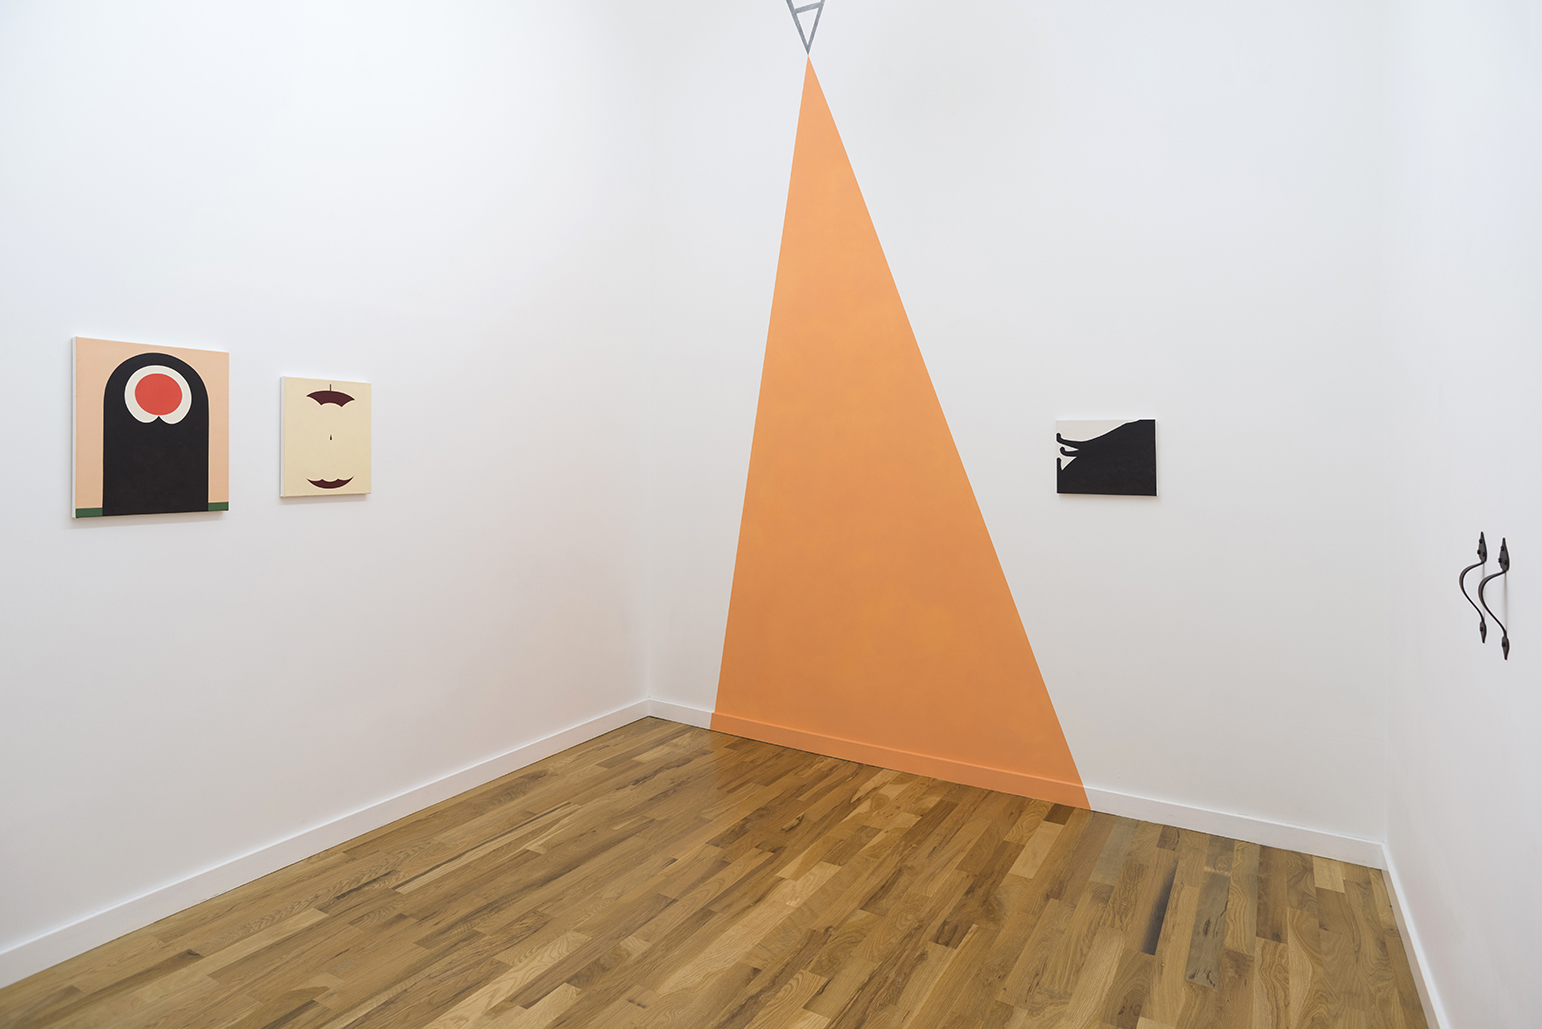 Alice Tippit, Bad Form, installation view